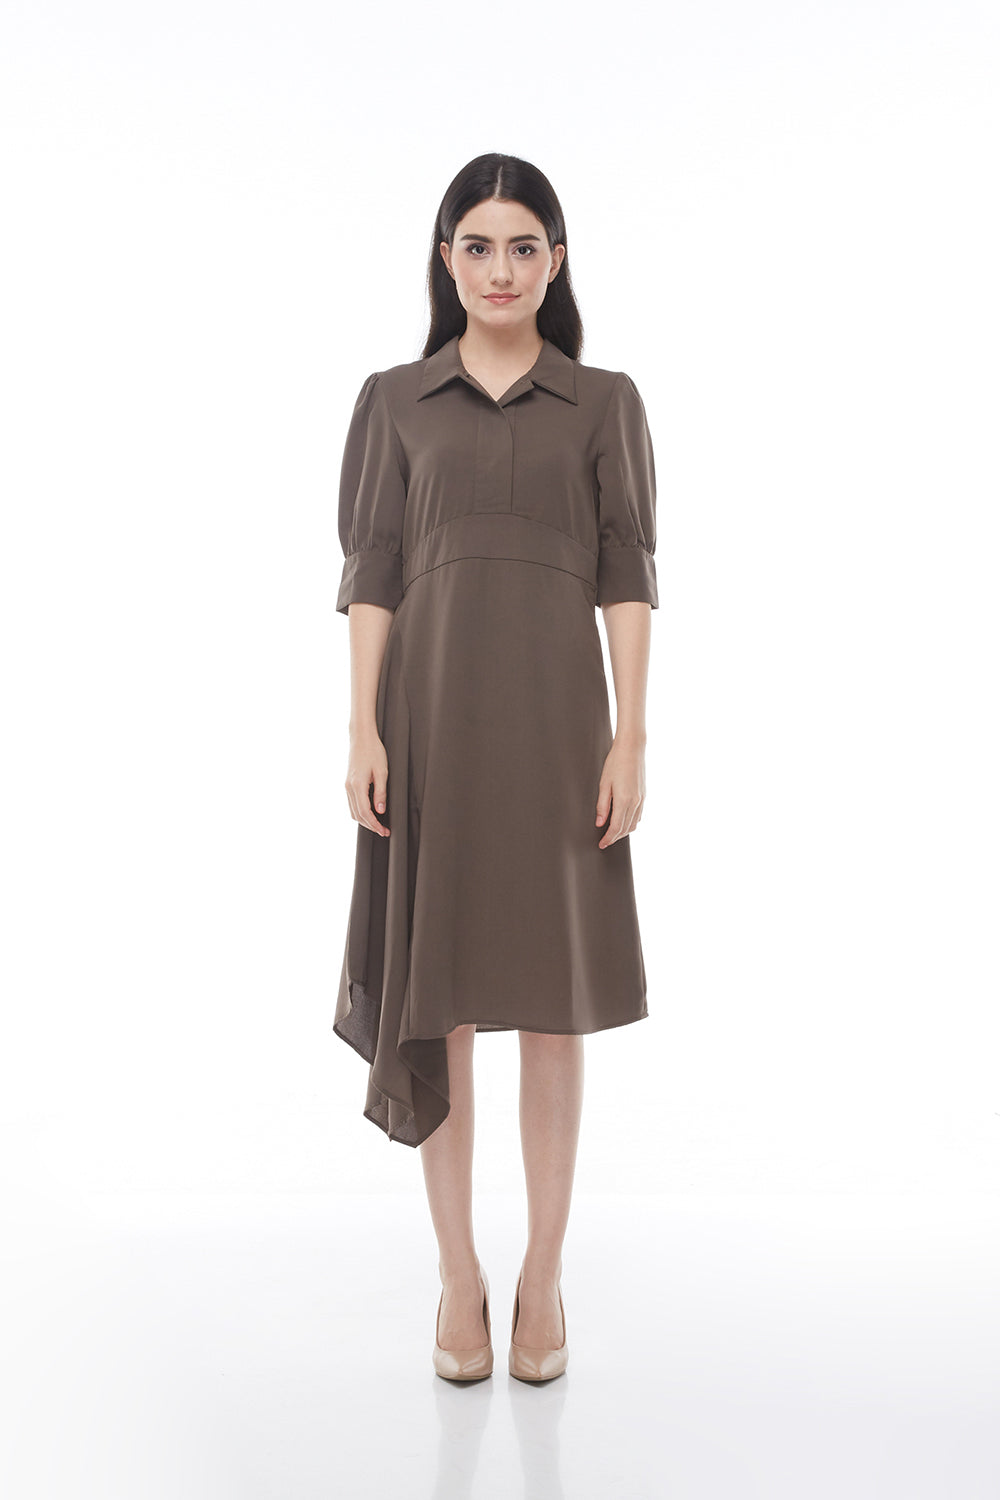 MAURICE DRESS